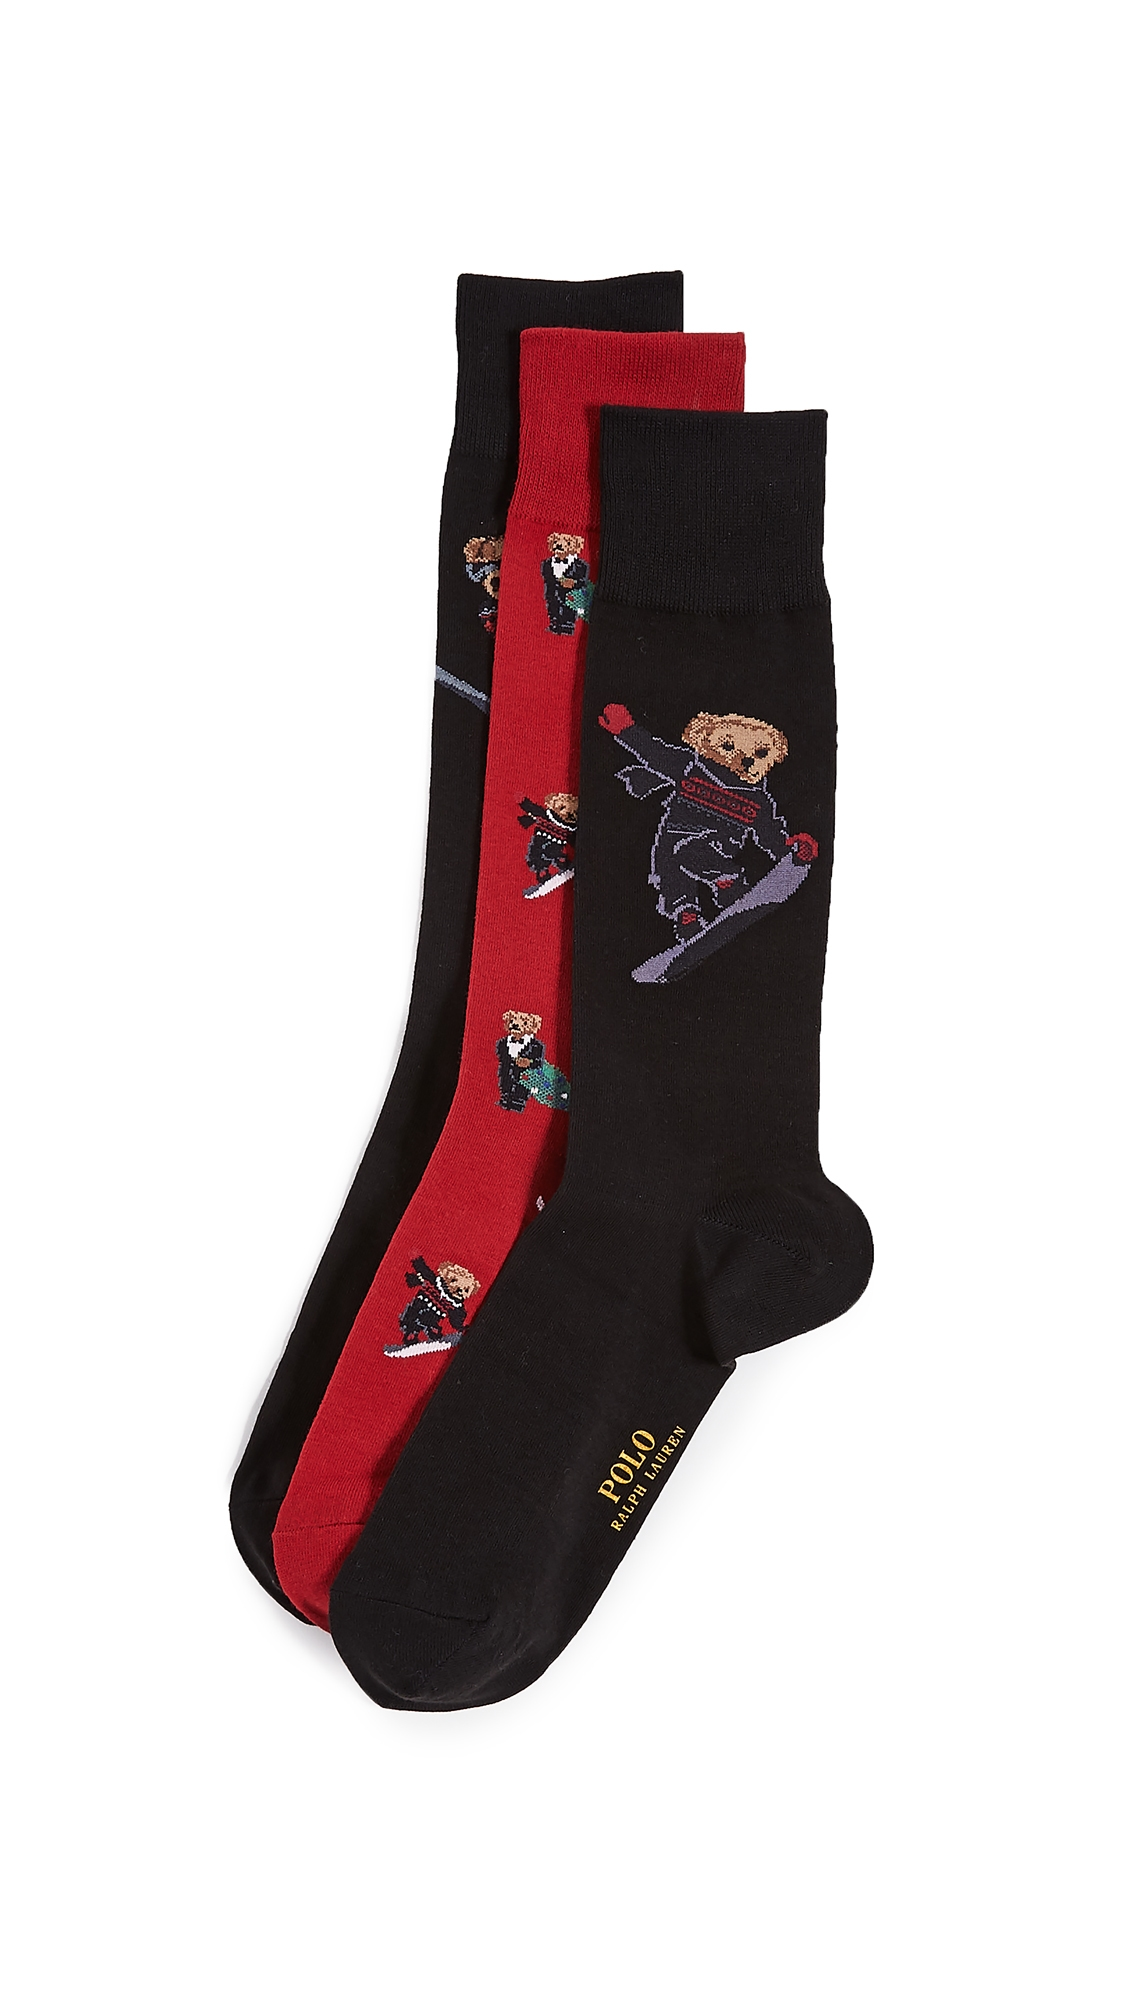 Polo Ralph Lauren Ski Jumper Socks 3-Pack Gift Box In Multi  sc 1 st  ModeSens & Polo Ralph Lauren Ski Jumper Socks 3-Pack Gift Box In Multi | ModeSens